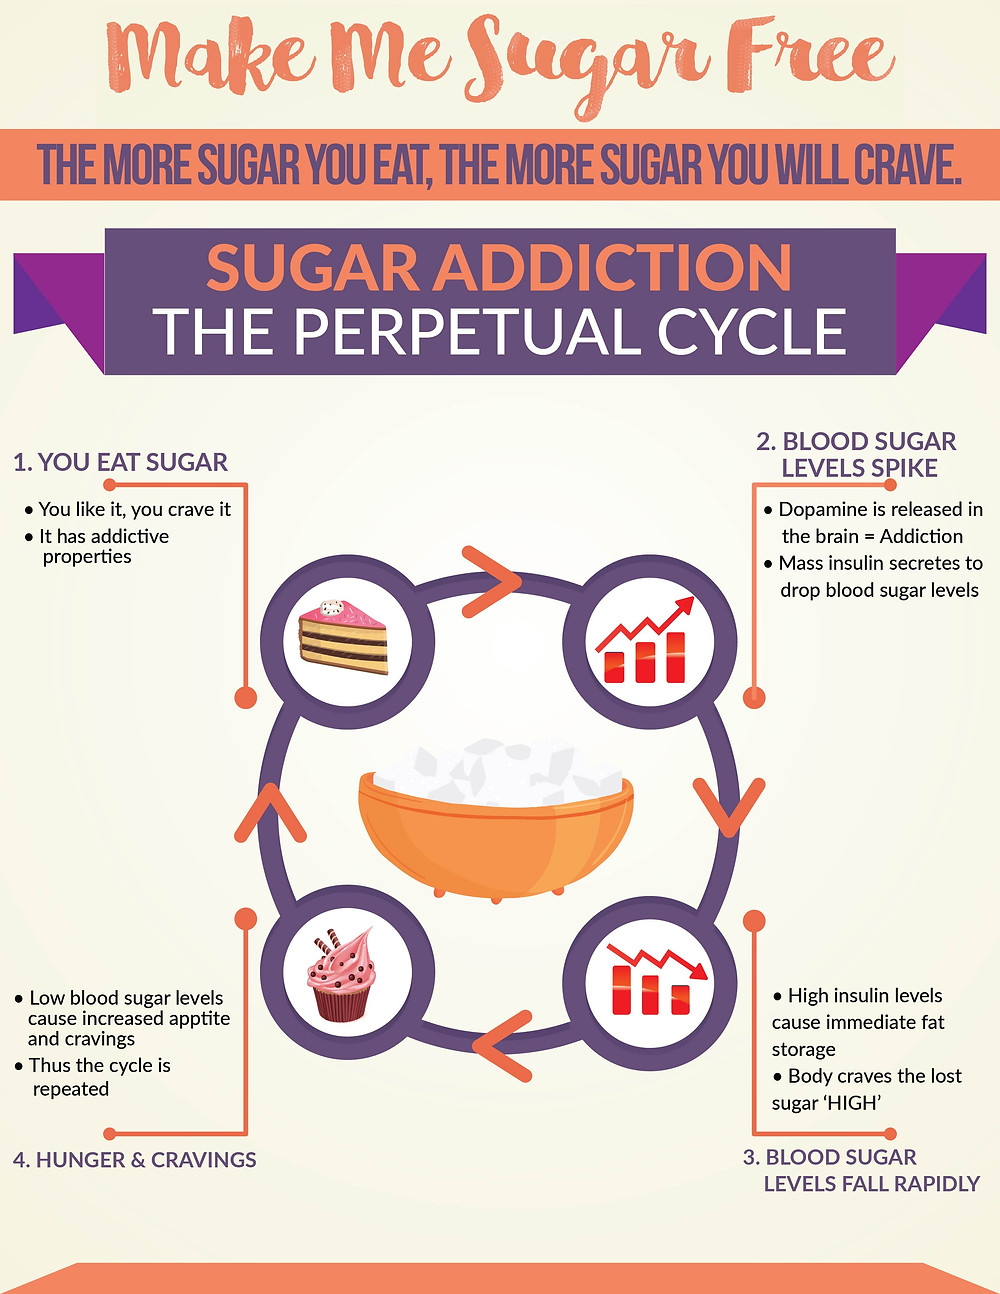 Infographic showing the stages of the sugar addiction cycle